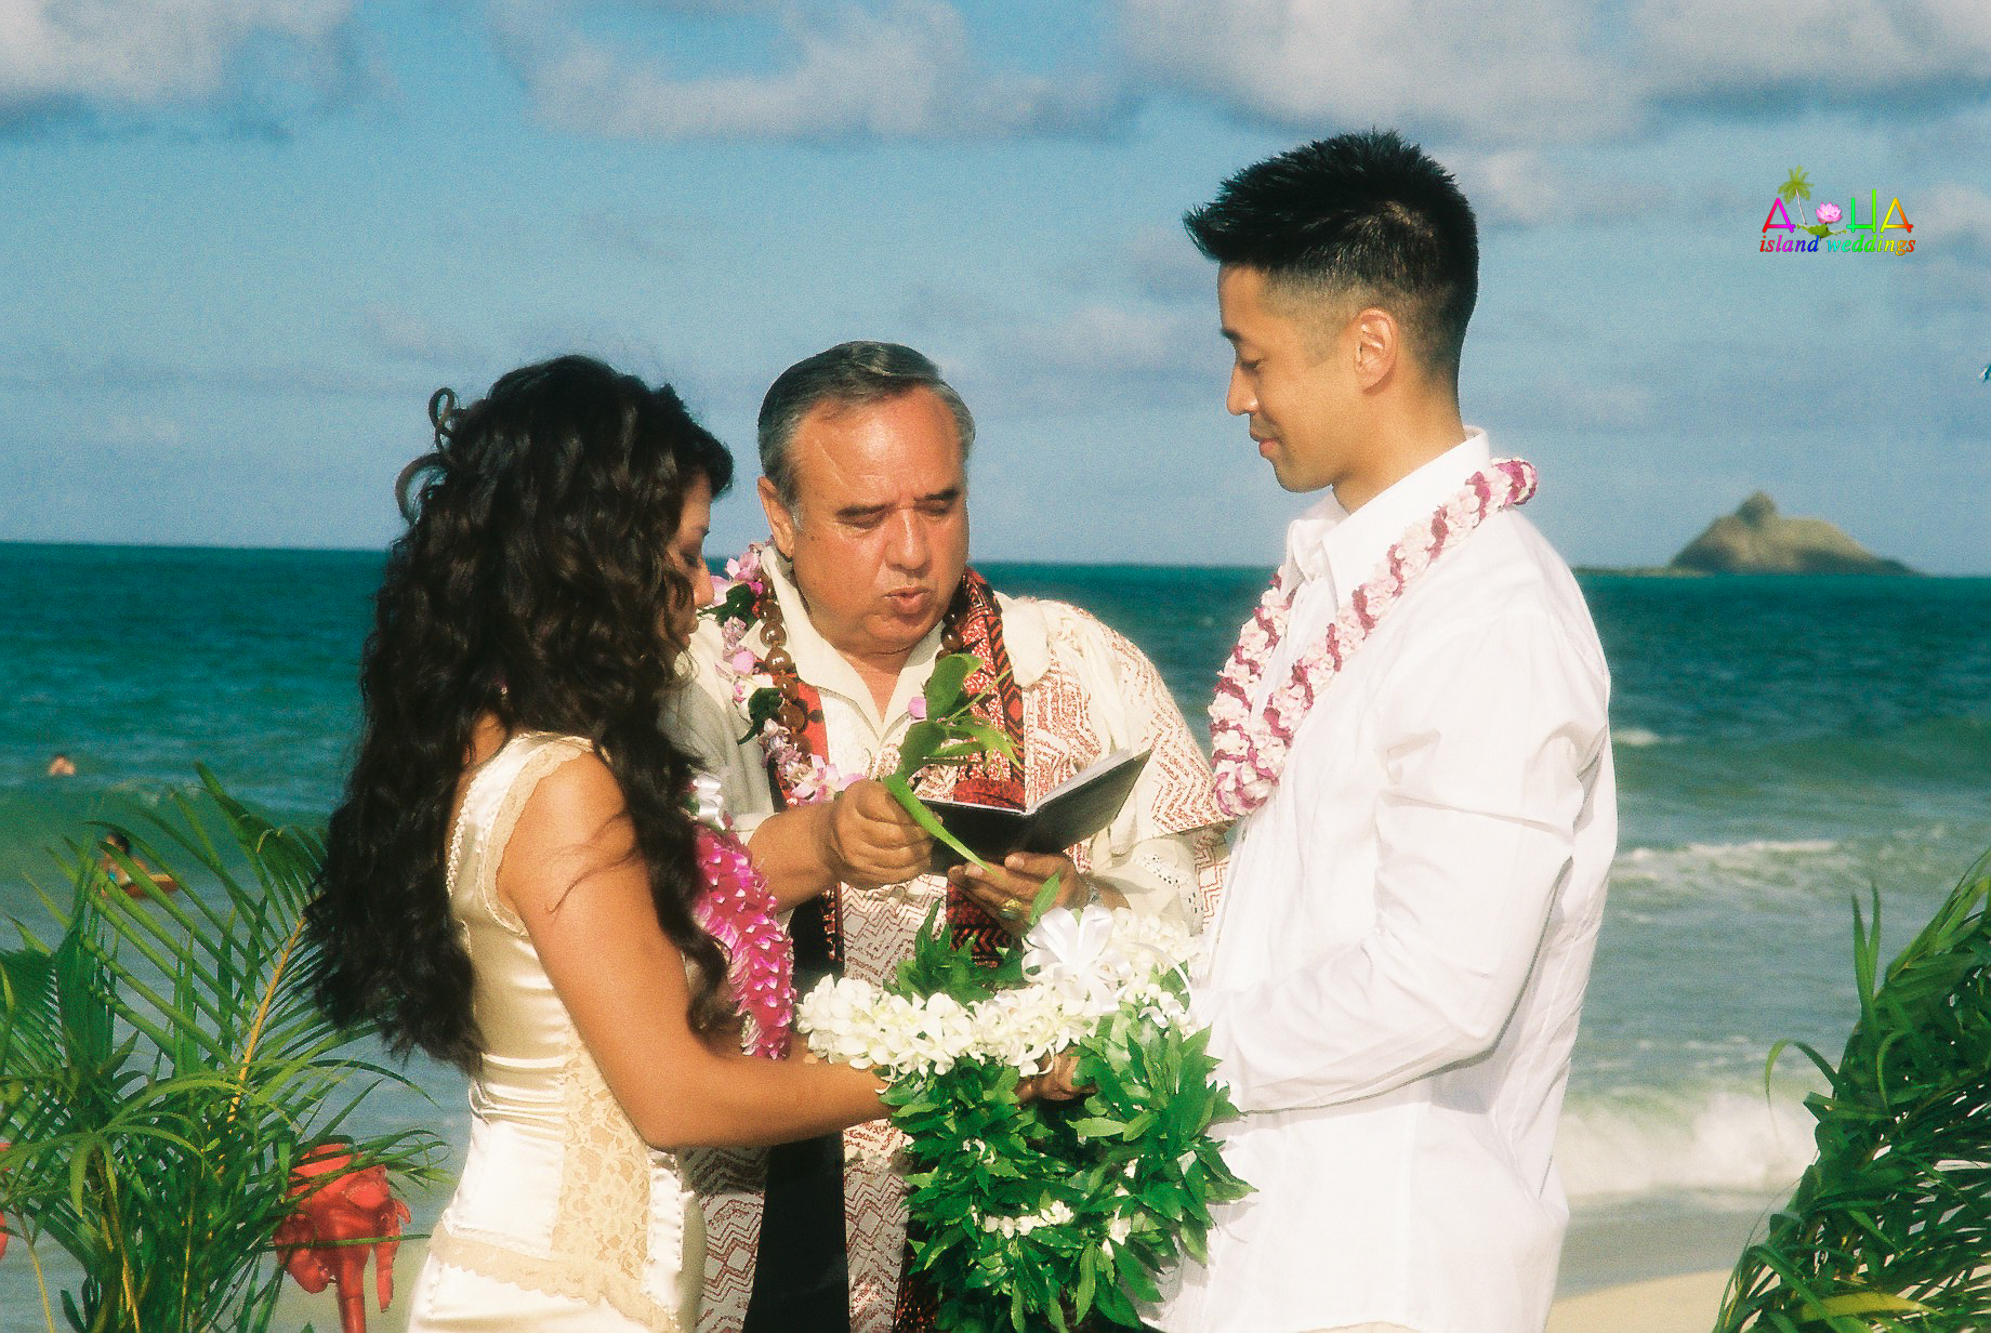 Beach wedding in Kailua-34